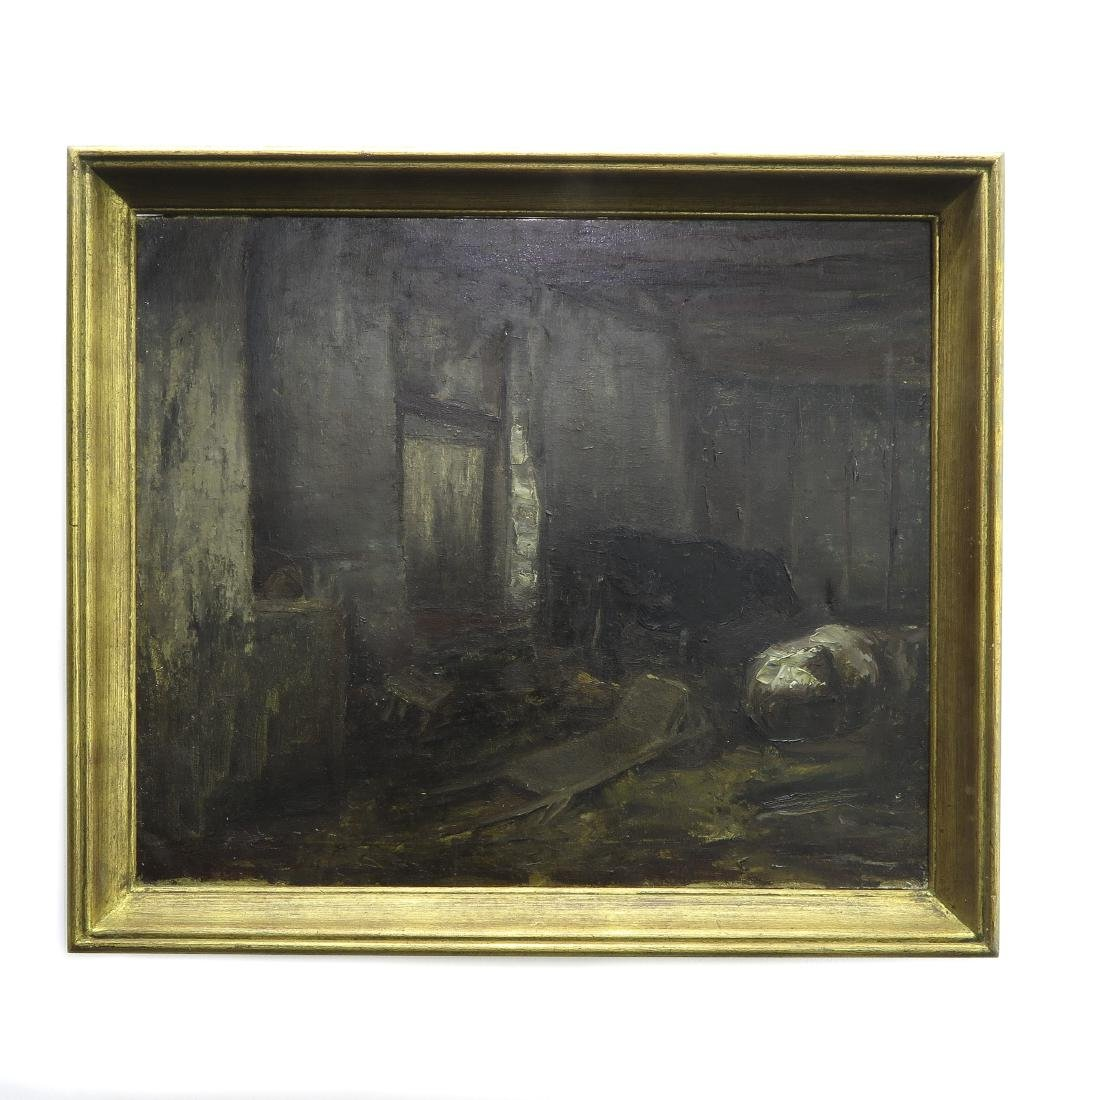 Oil on Canvas Depicting Barn Interior